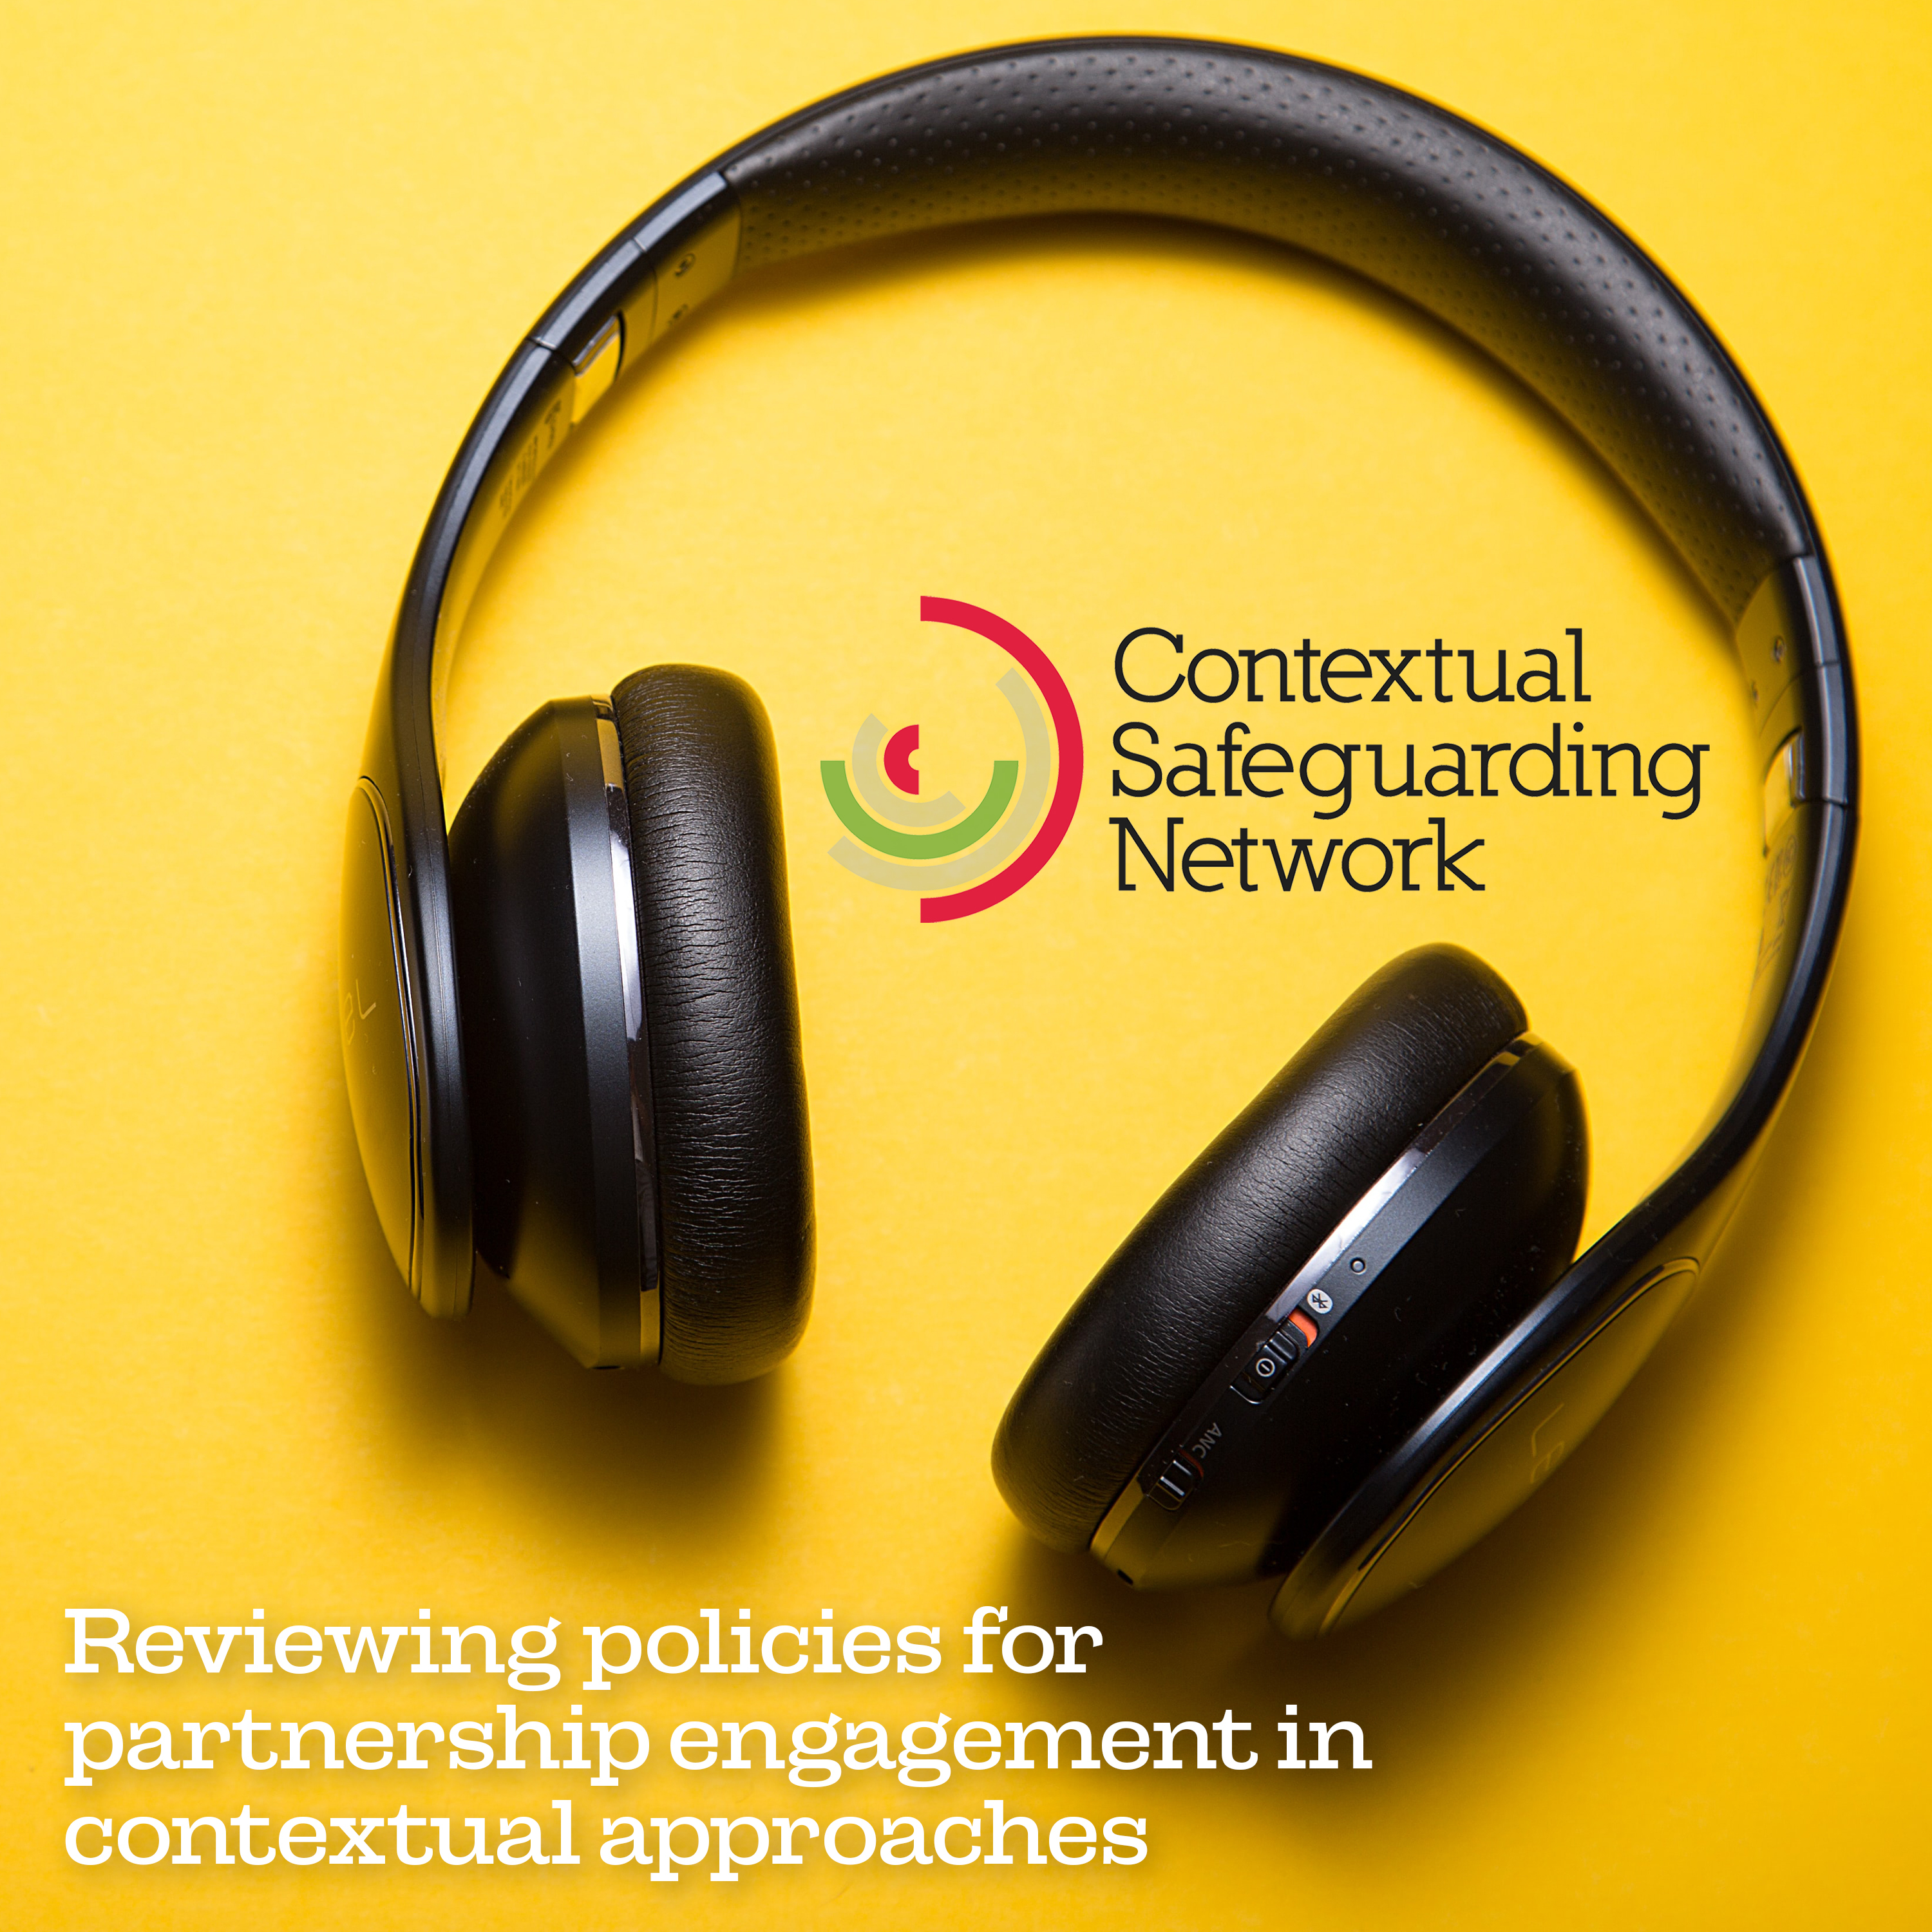 Reviewing policies for partnership engagement in contextual approaches